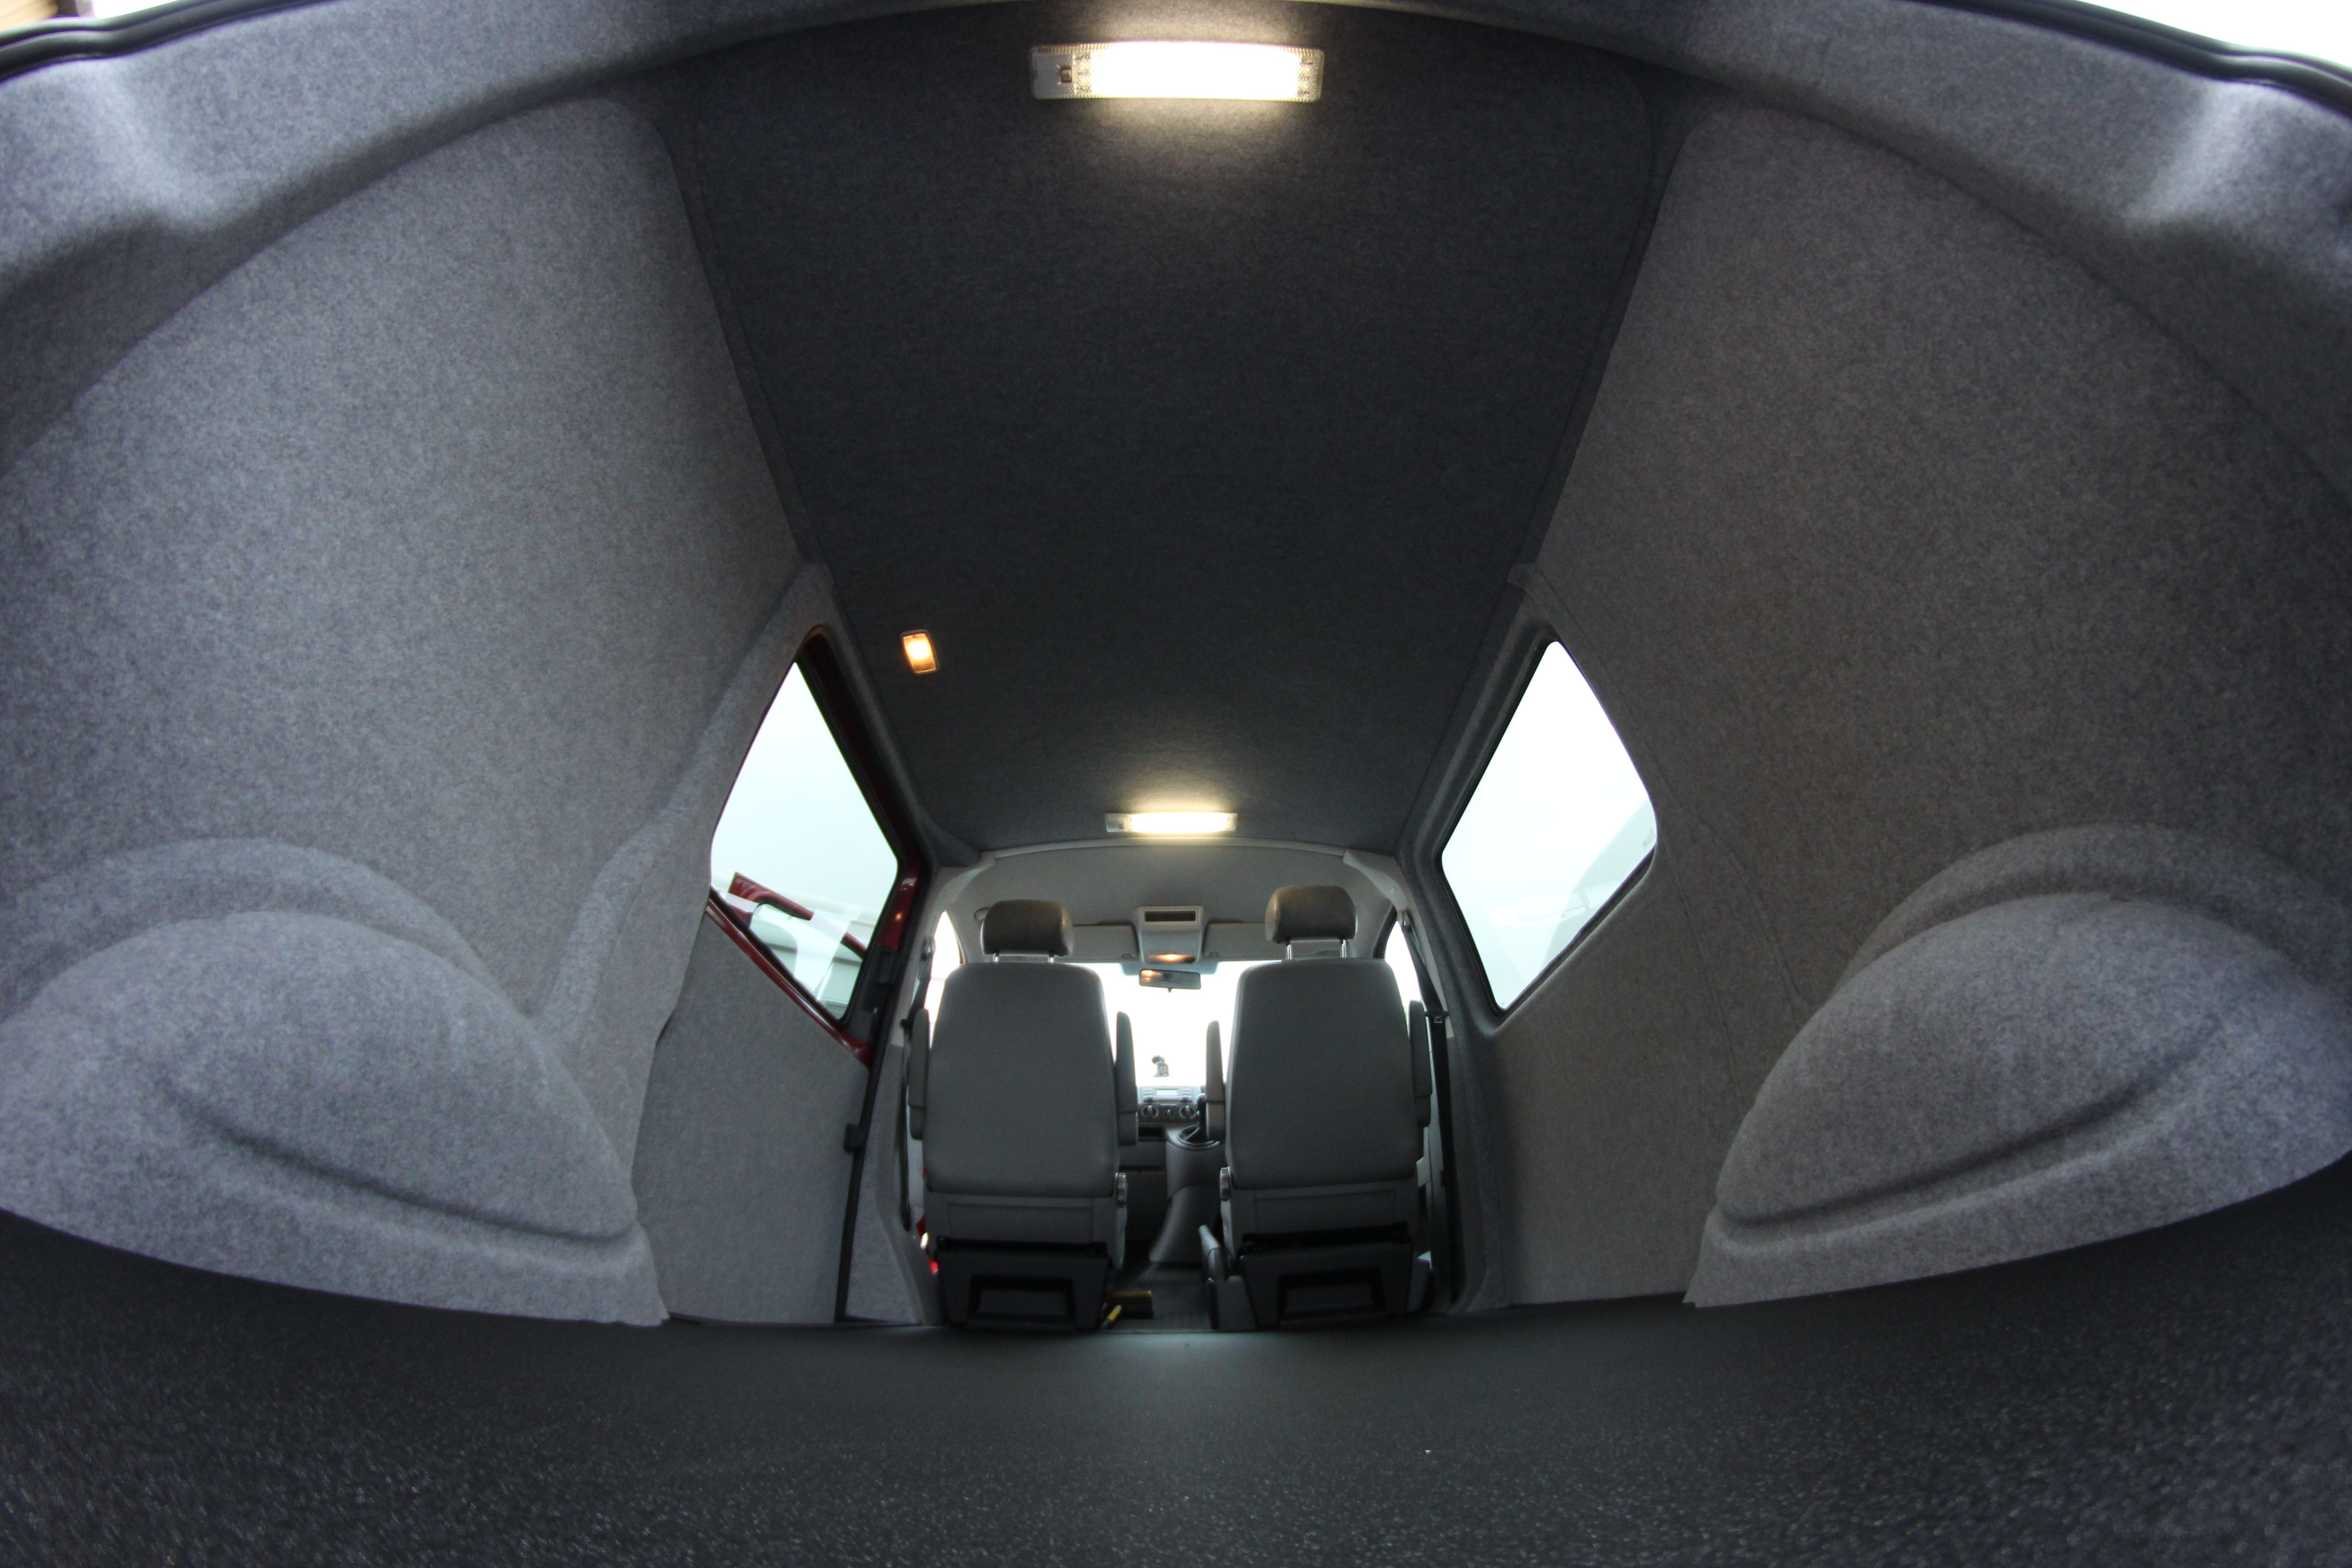 Insulate Ply Line Carpet Rear Under Supply Fit Floor And Apply Industrial Vinyl 2 Day Van Conversion Service